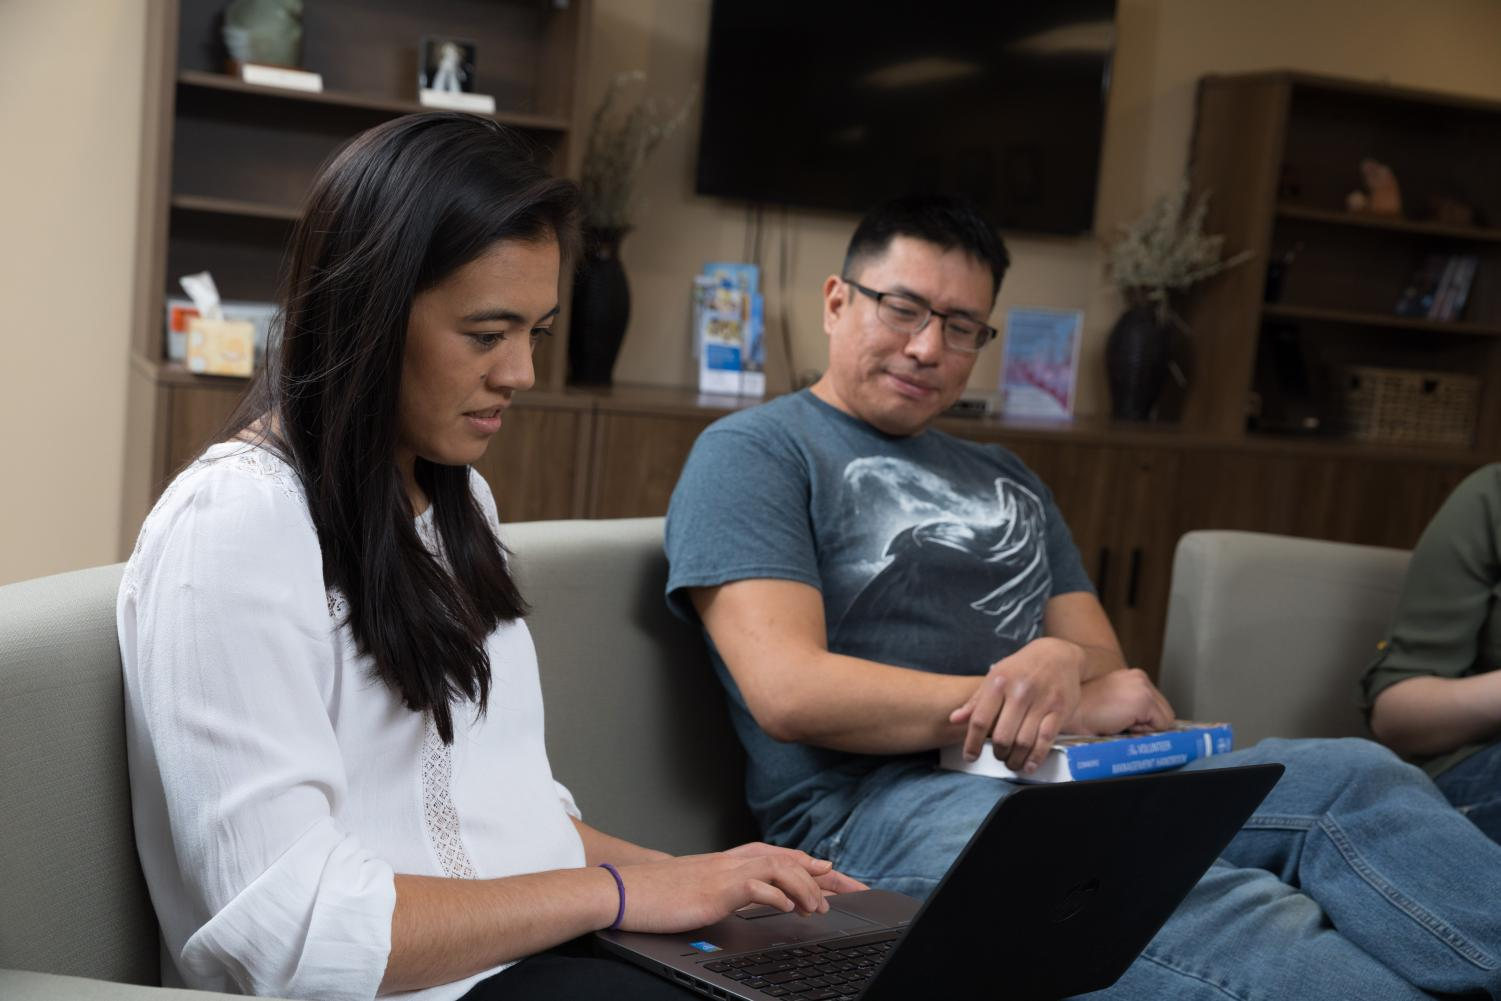 American Indian students work on academics in the American Indian Student center on SDSU's campus.